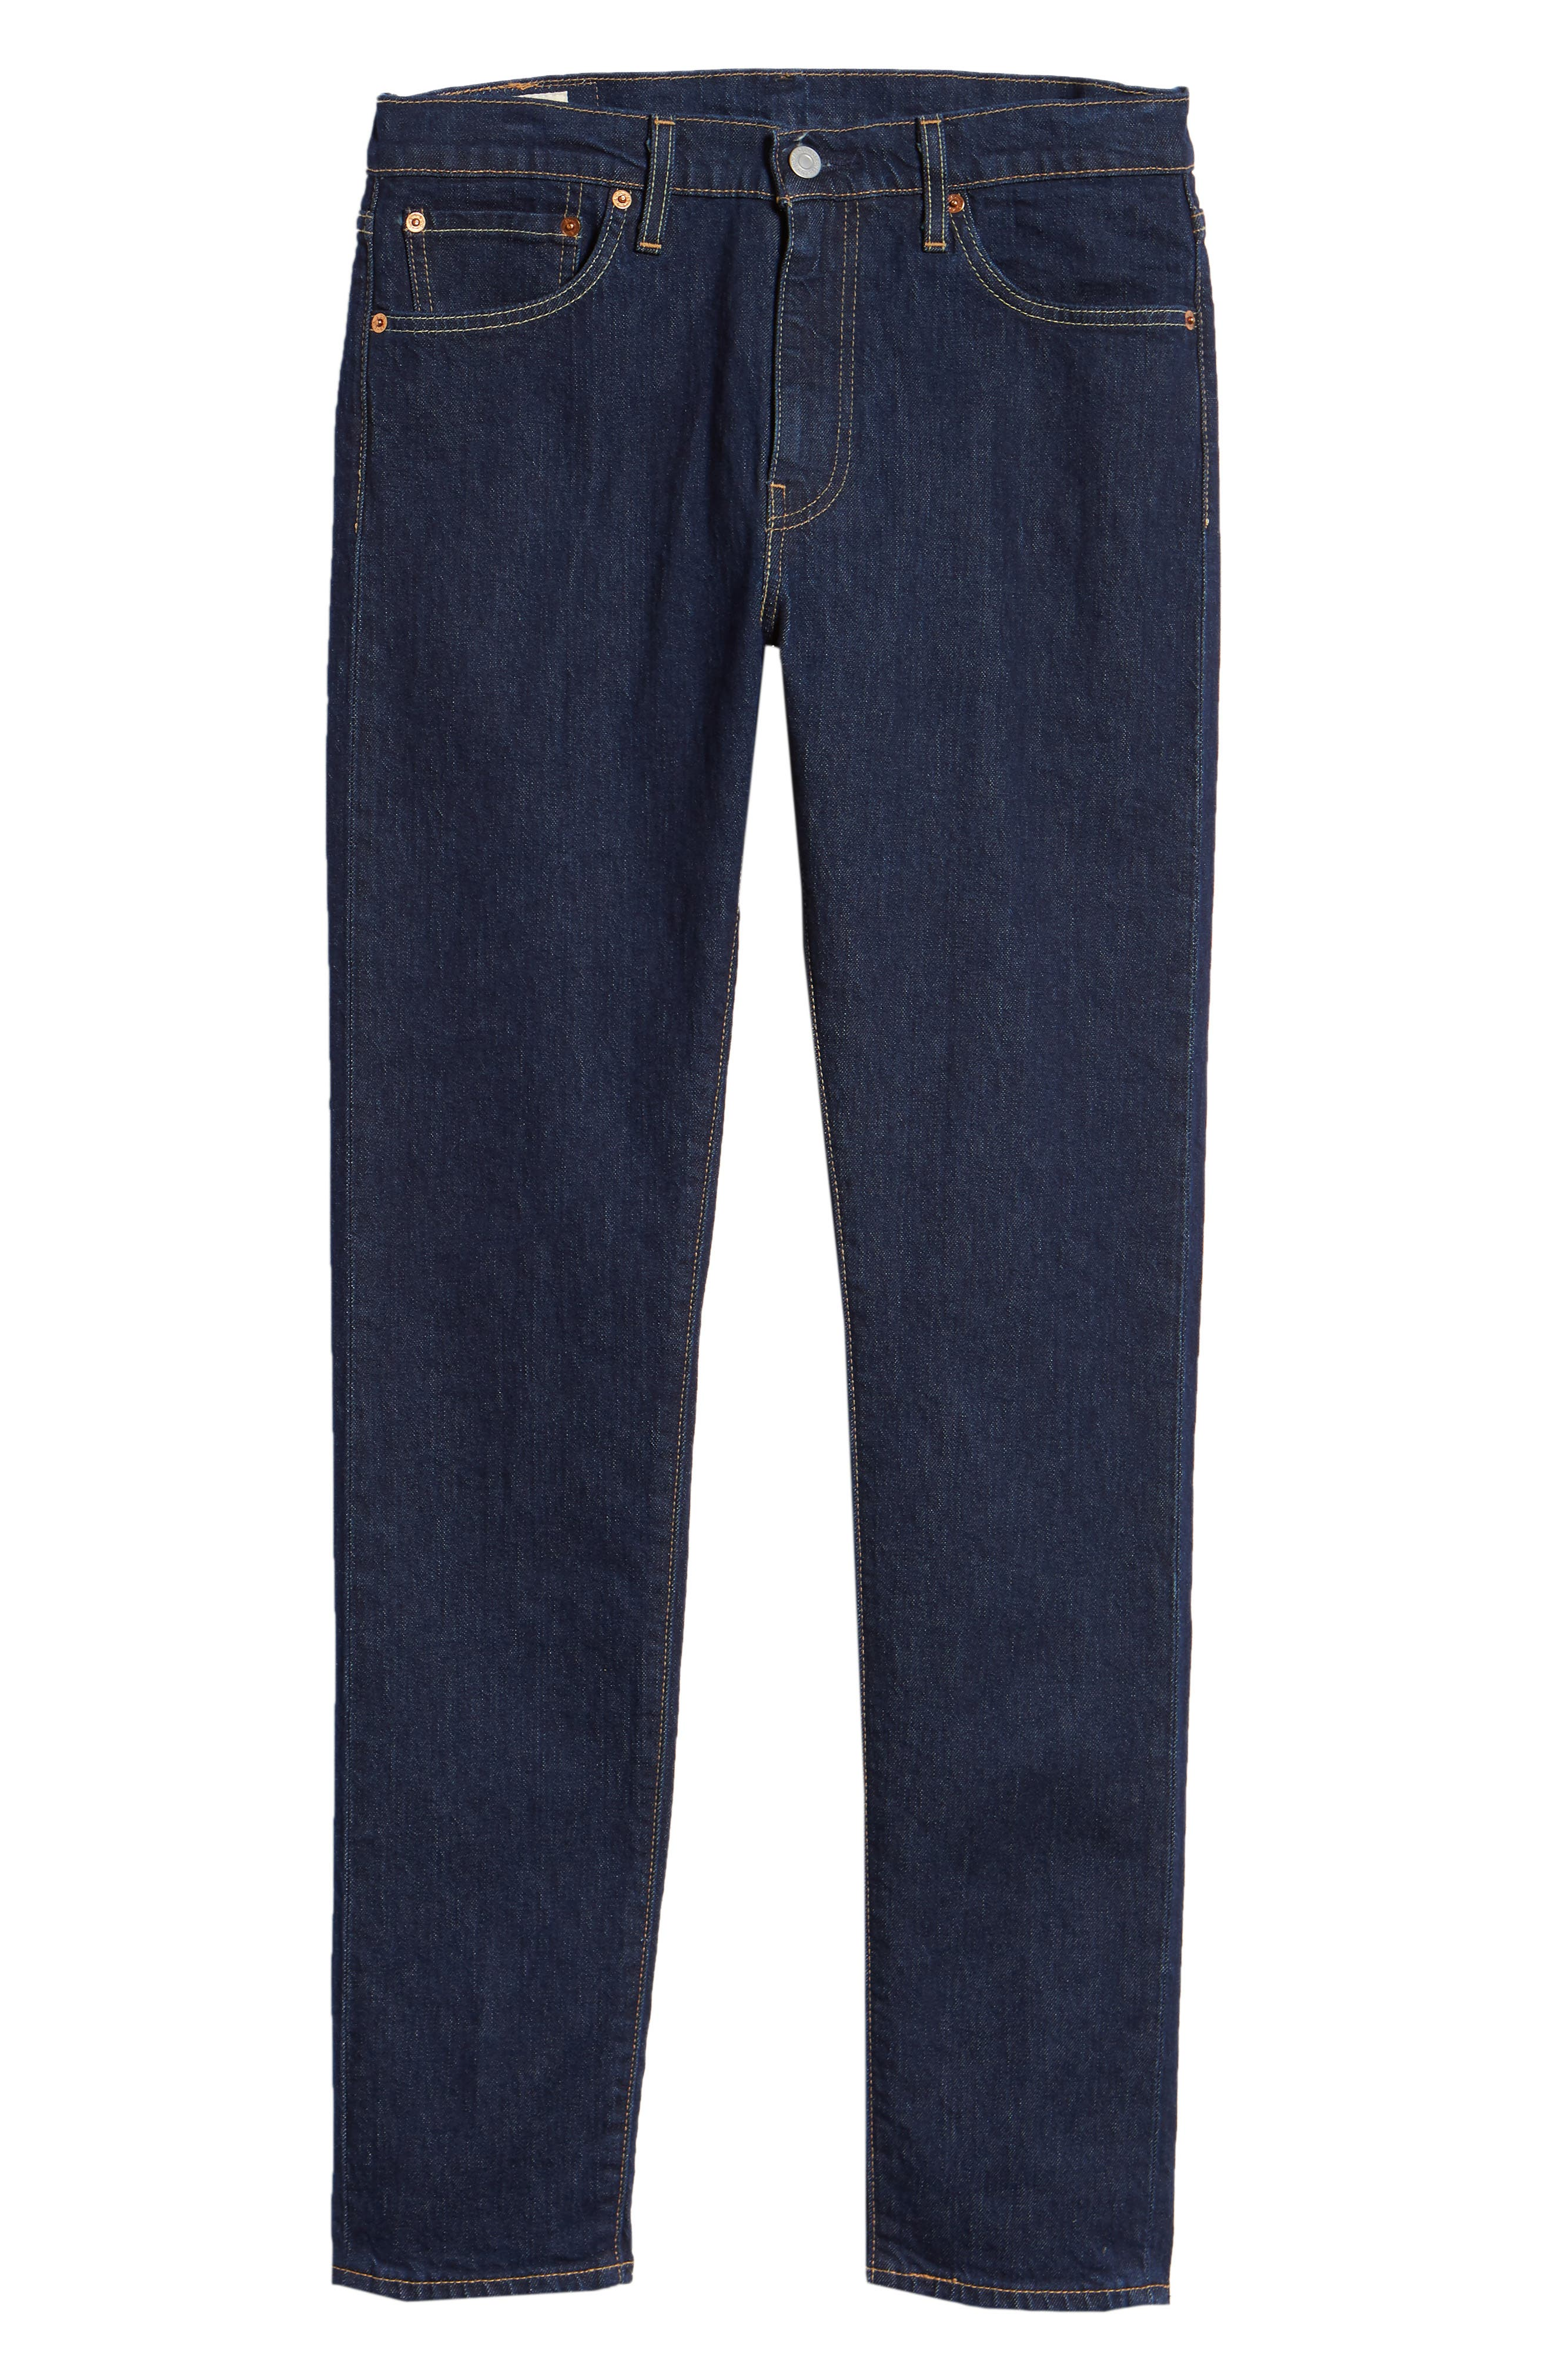 510<sup>™</sup> Skinny Fit Jeans,                             Alternate thumbnail 6, color,                             CHAIN RINSE